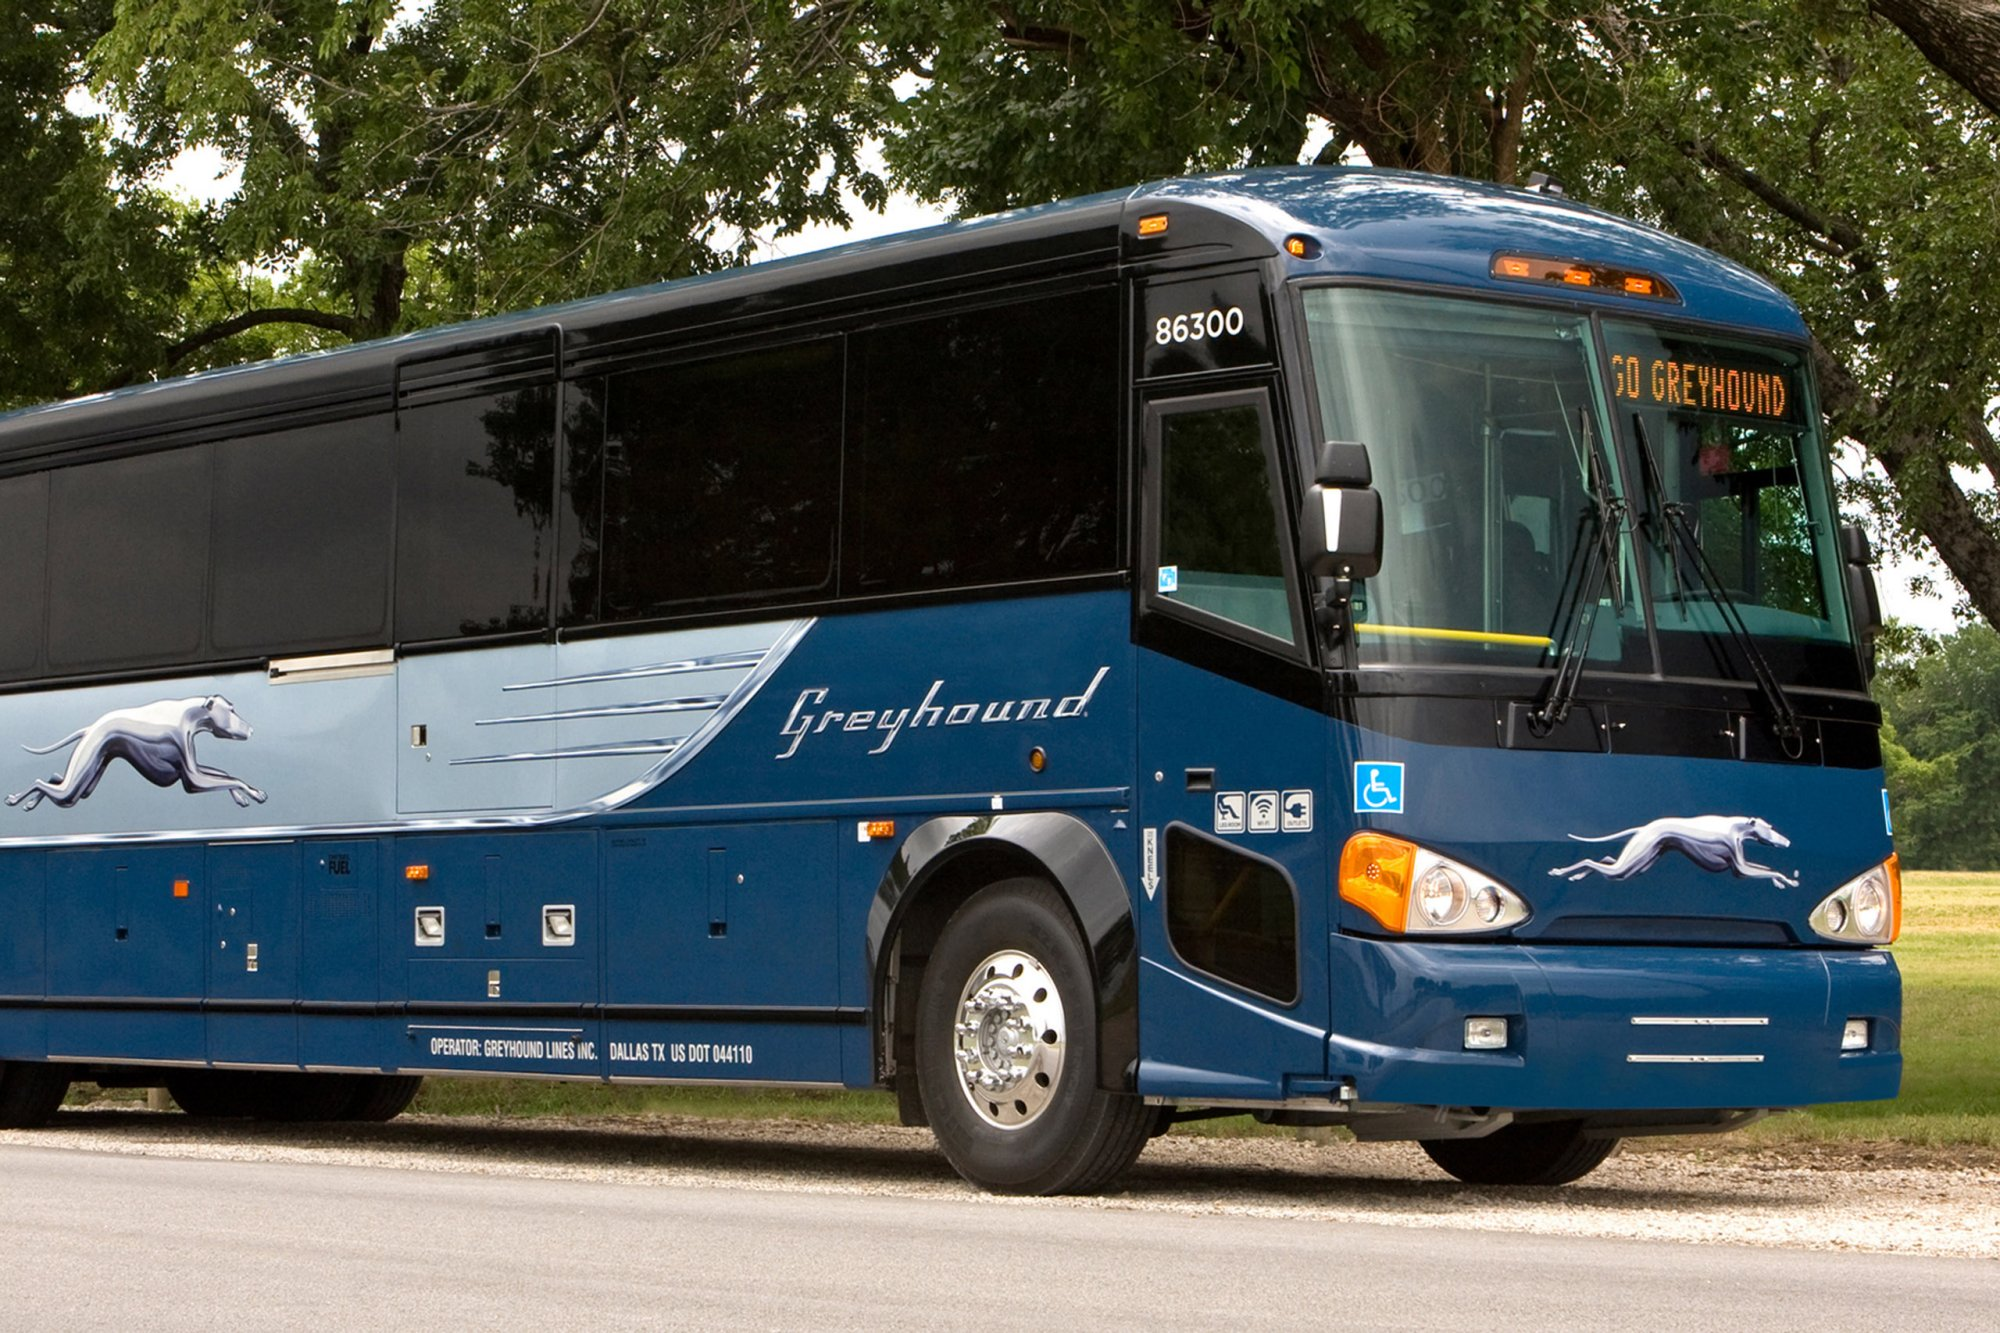 Bus Accident Lawyer | Greyhound Bus Accident Lawyer